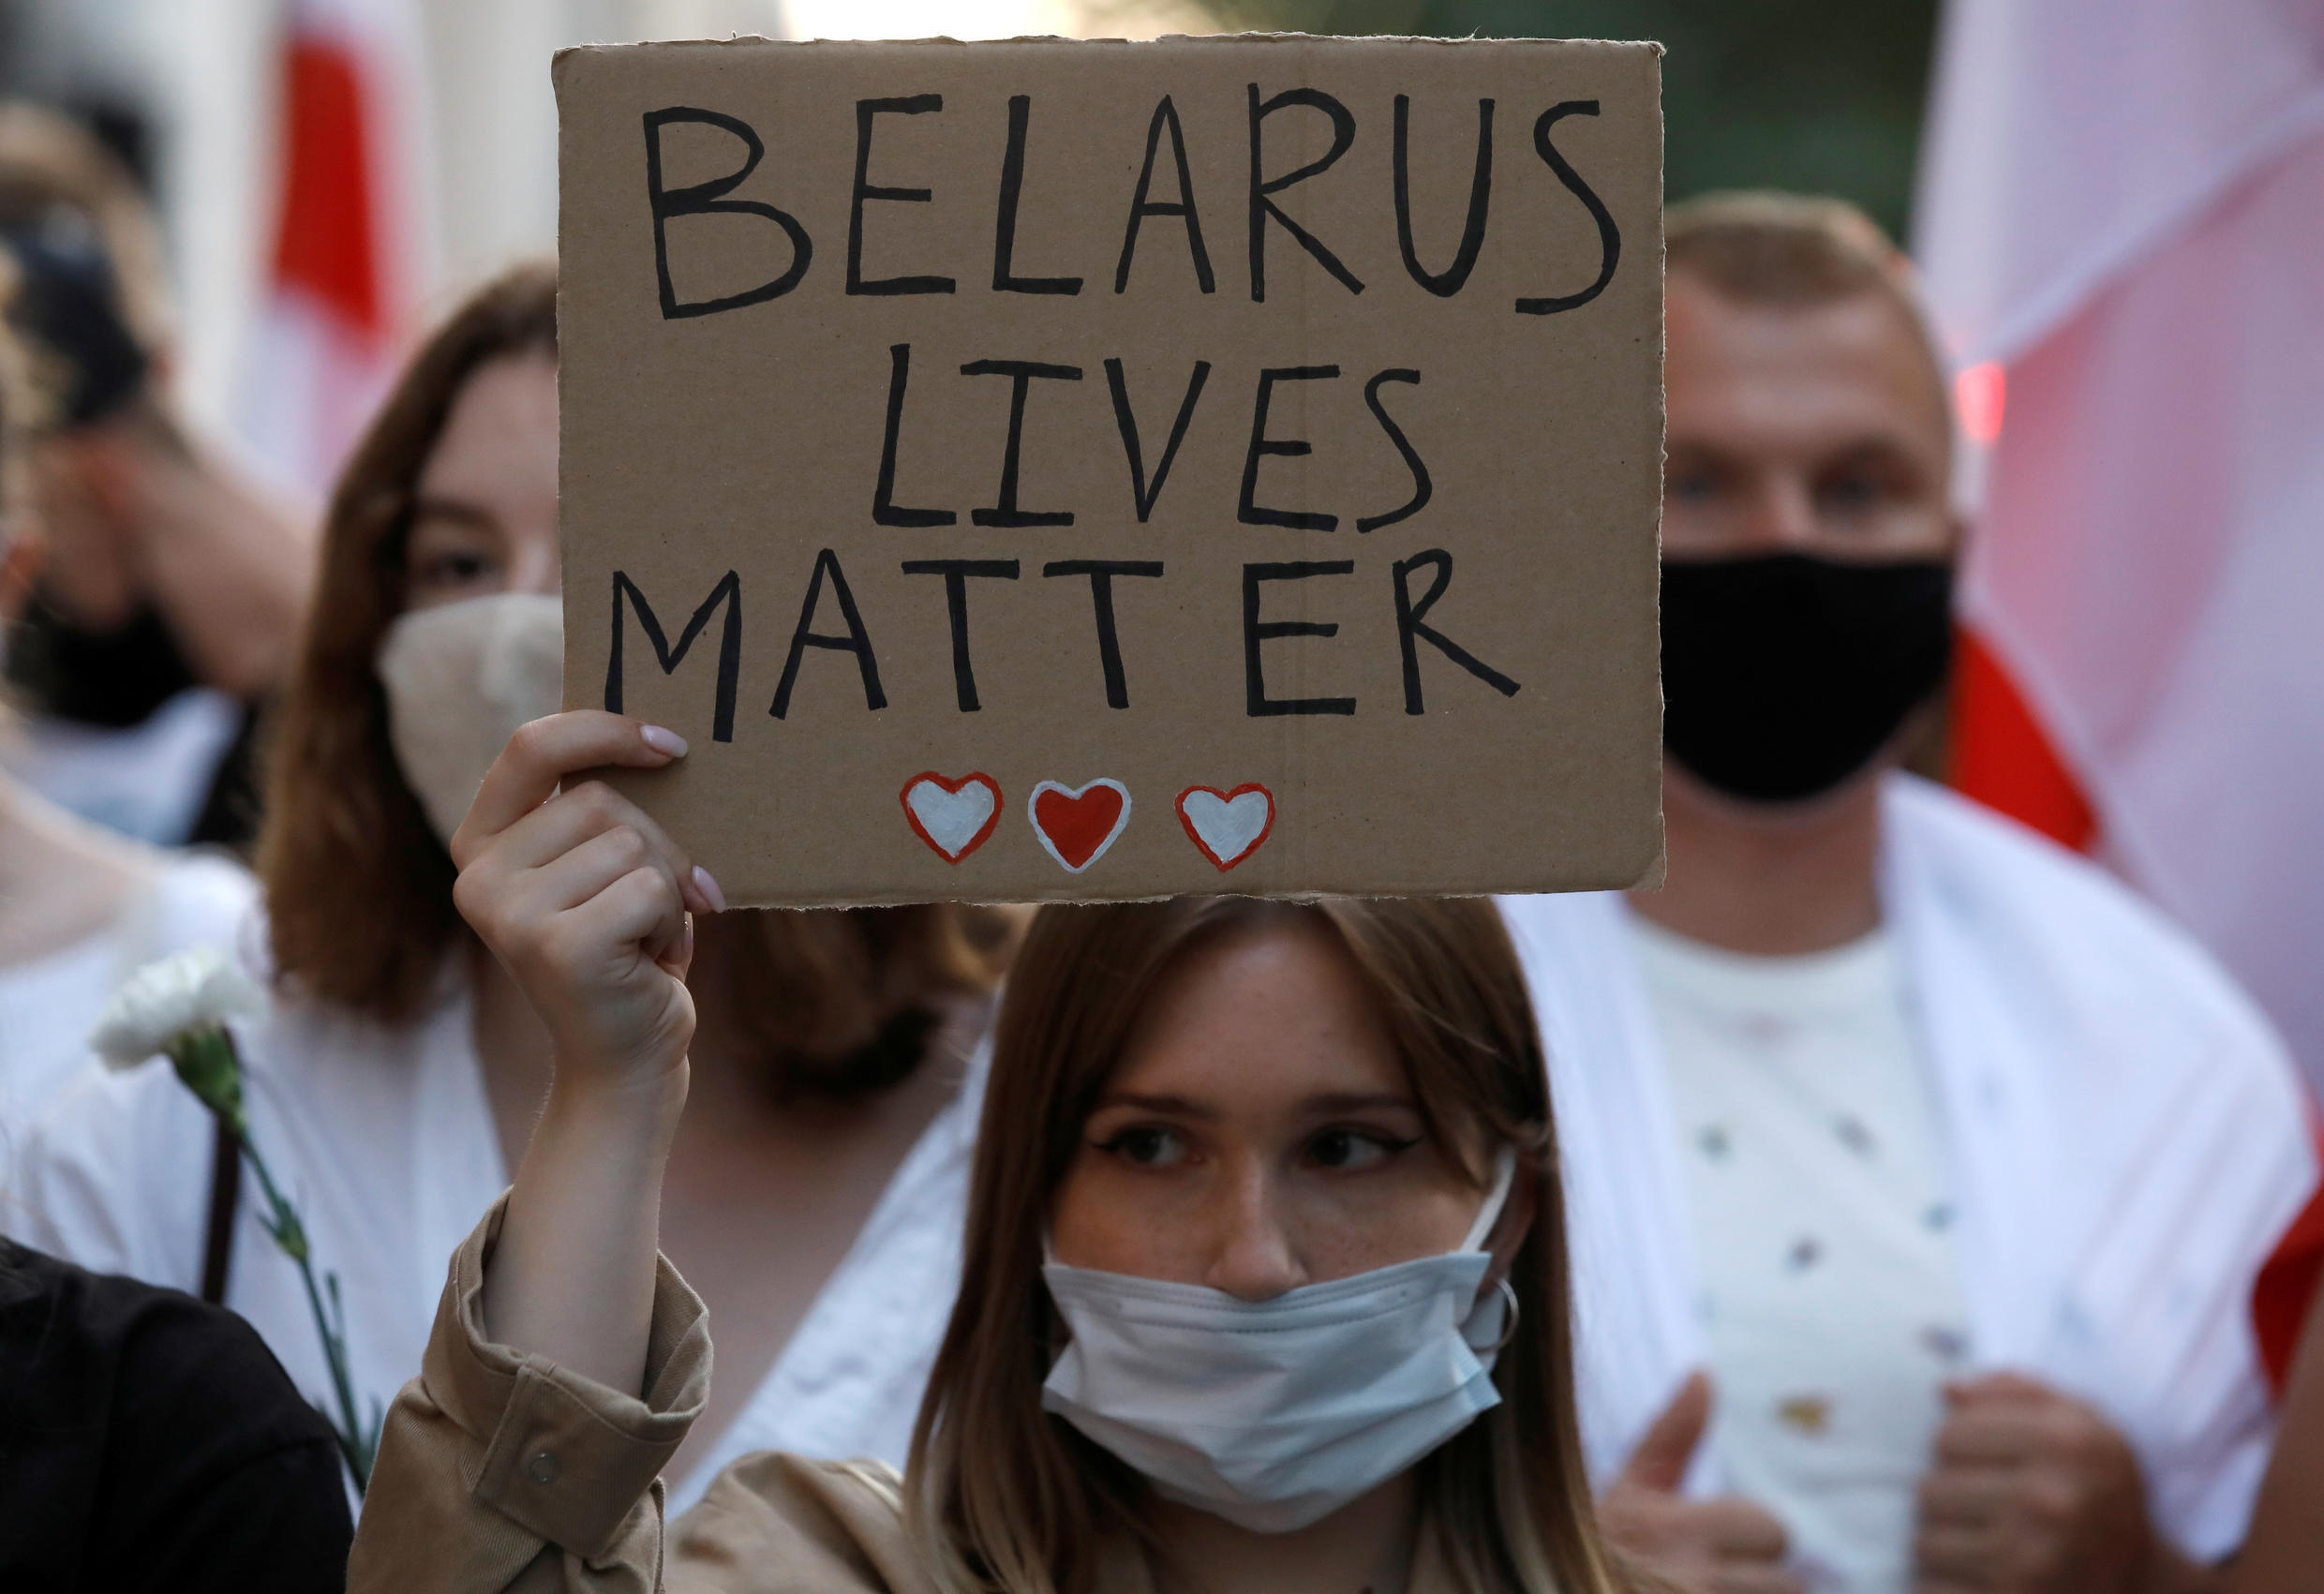 2020-08-13T183927Z_263941731_RC26DI9RQTUD_RTRMADP_3_BELARUS-ELECTION-POLAND-PROTESTS